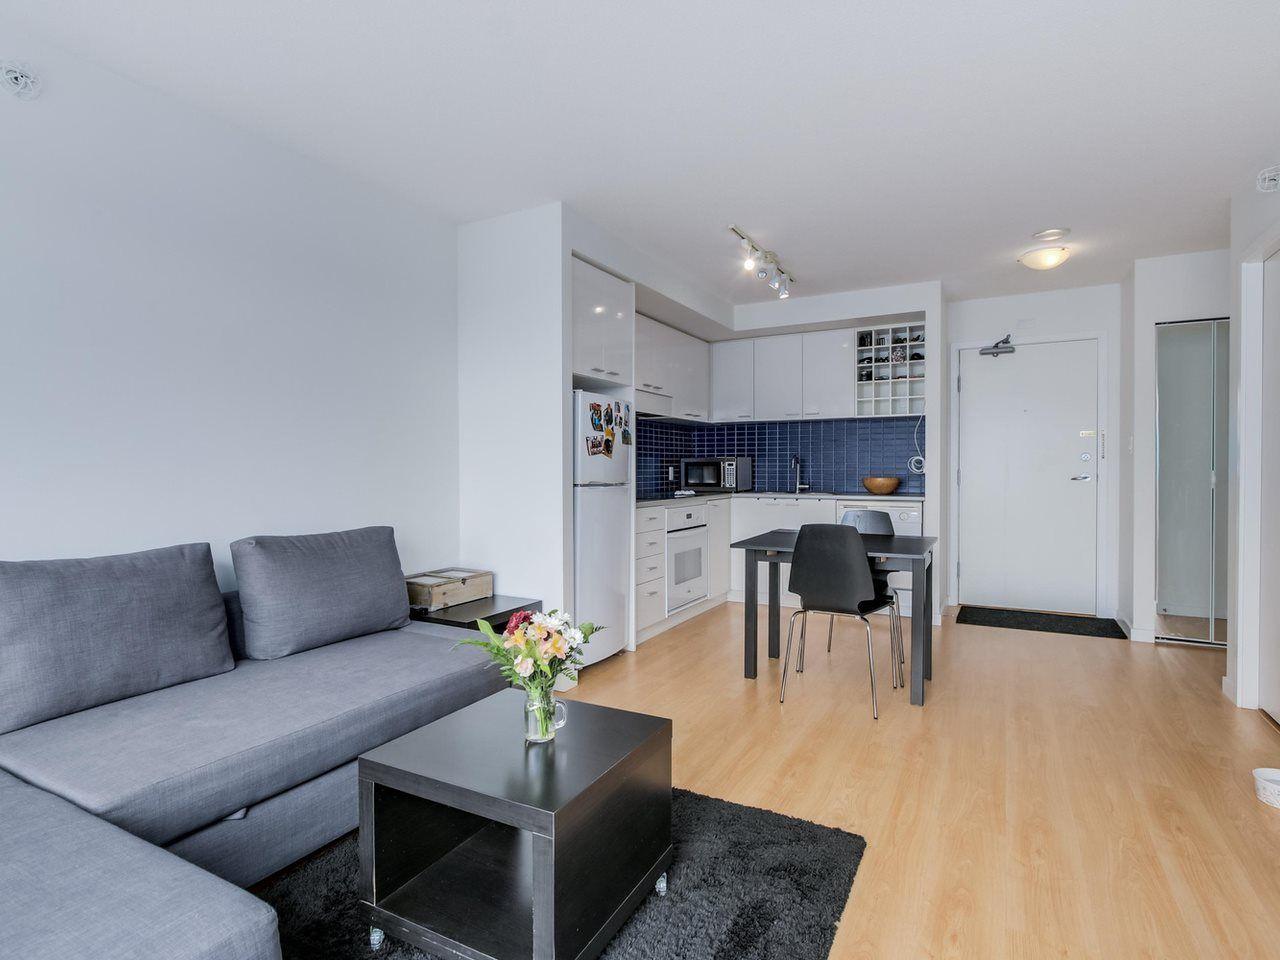 """Main Photo: 803 131 REGIMENT Square in Vancouver: Downtown VW Condo for sale in """"SPECTRUM 3"""" (Vancouver West)  : MLS®# R2072638"""